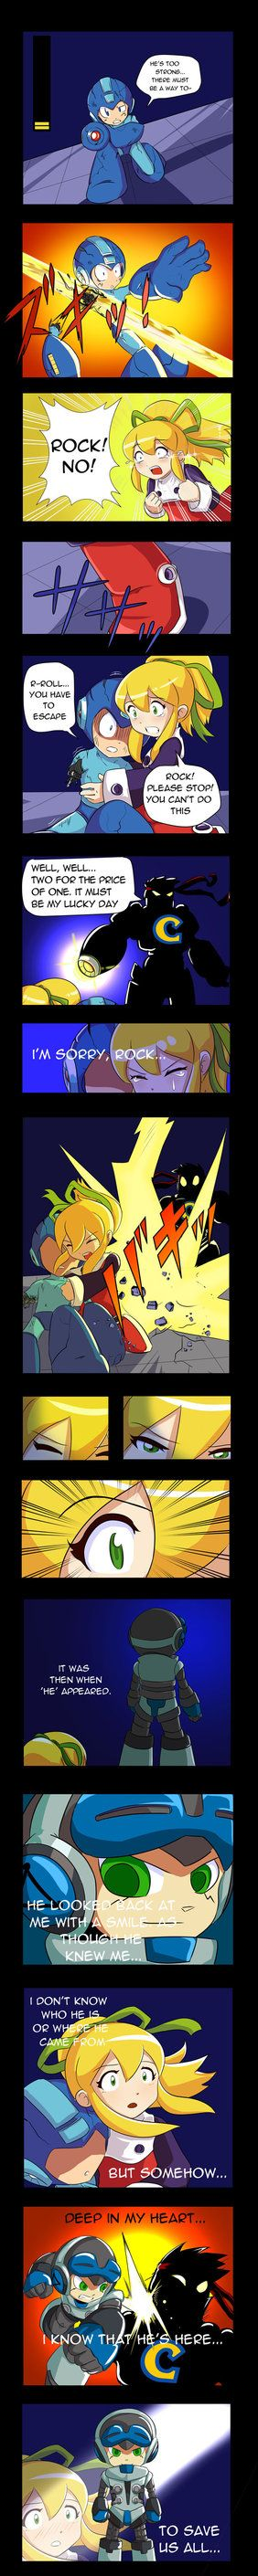 Mighty No.9 - Save us all